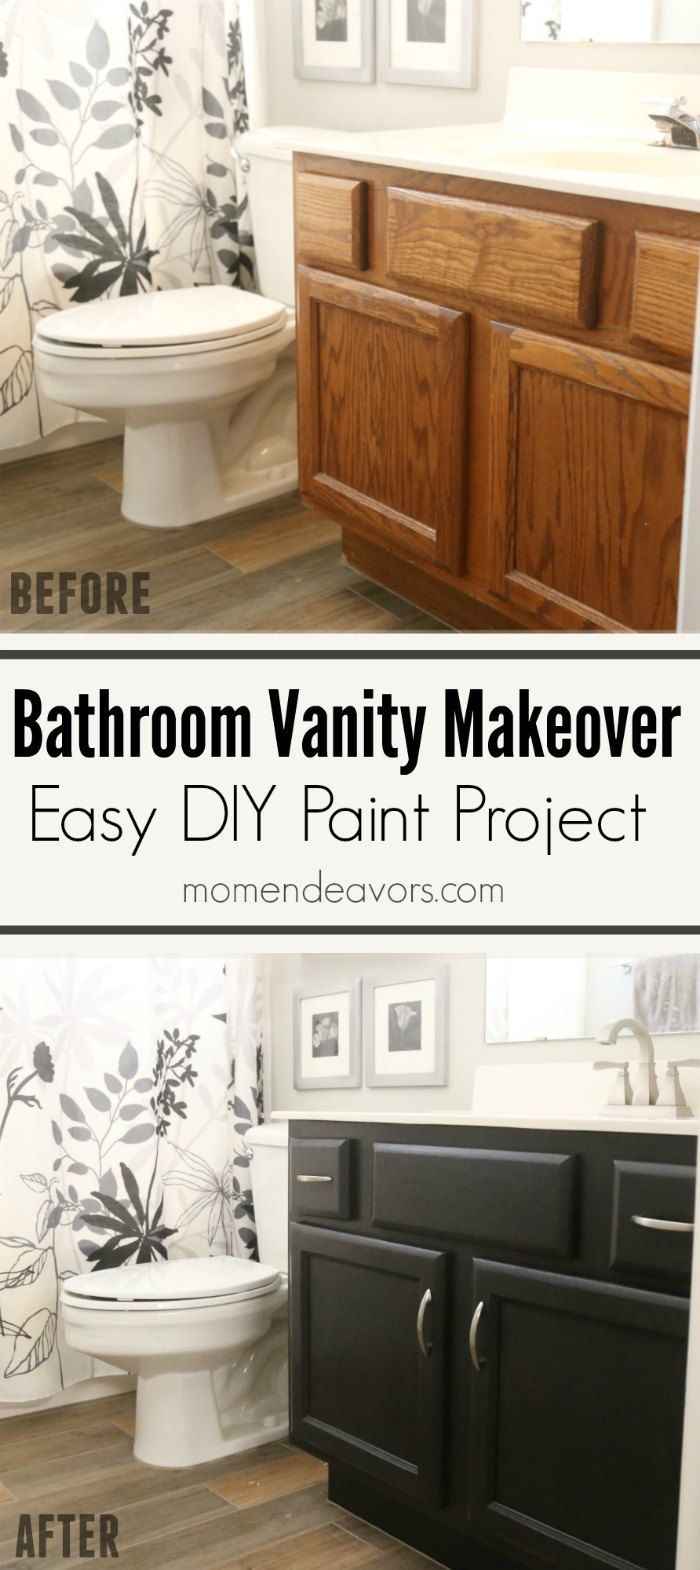 Bathroom Vanity Makeover – Easy DIY Home Paint Project | Pinterest ...